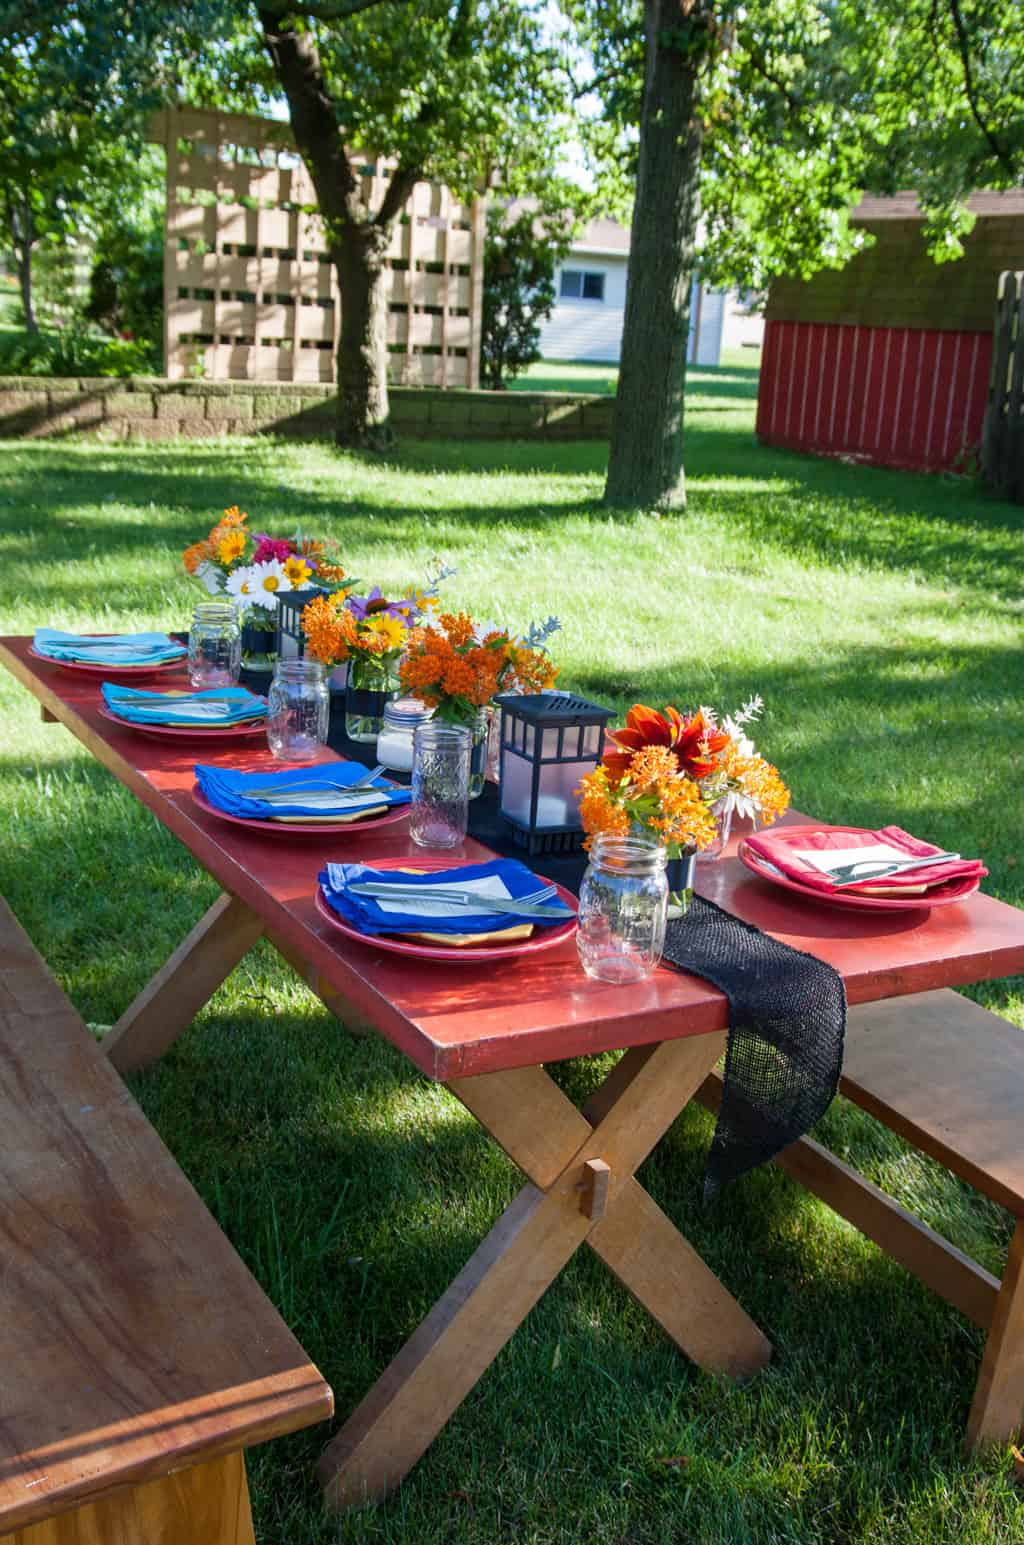 How To Have A Farm To Table Dinner In Your Backyard